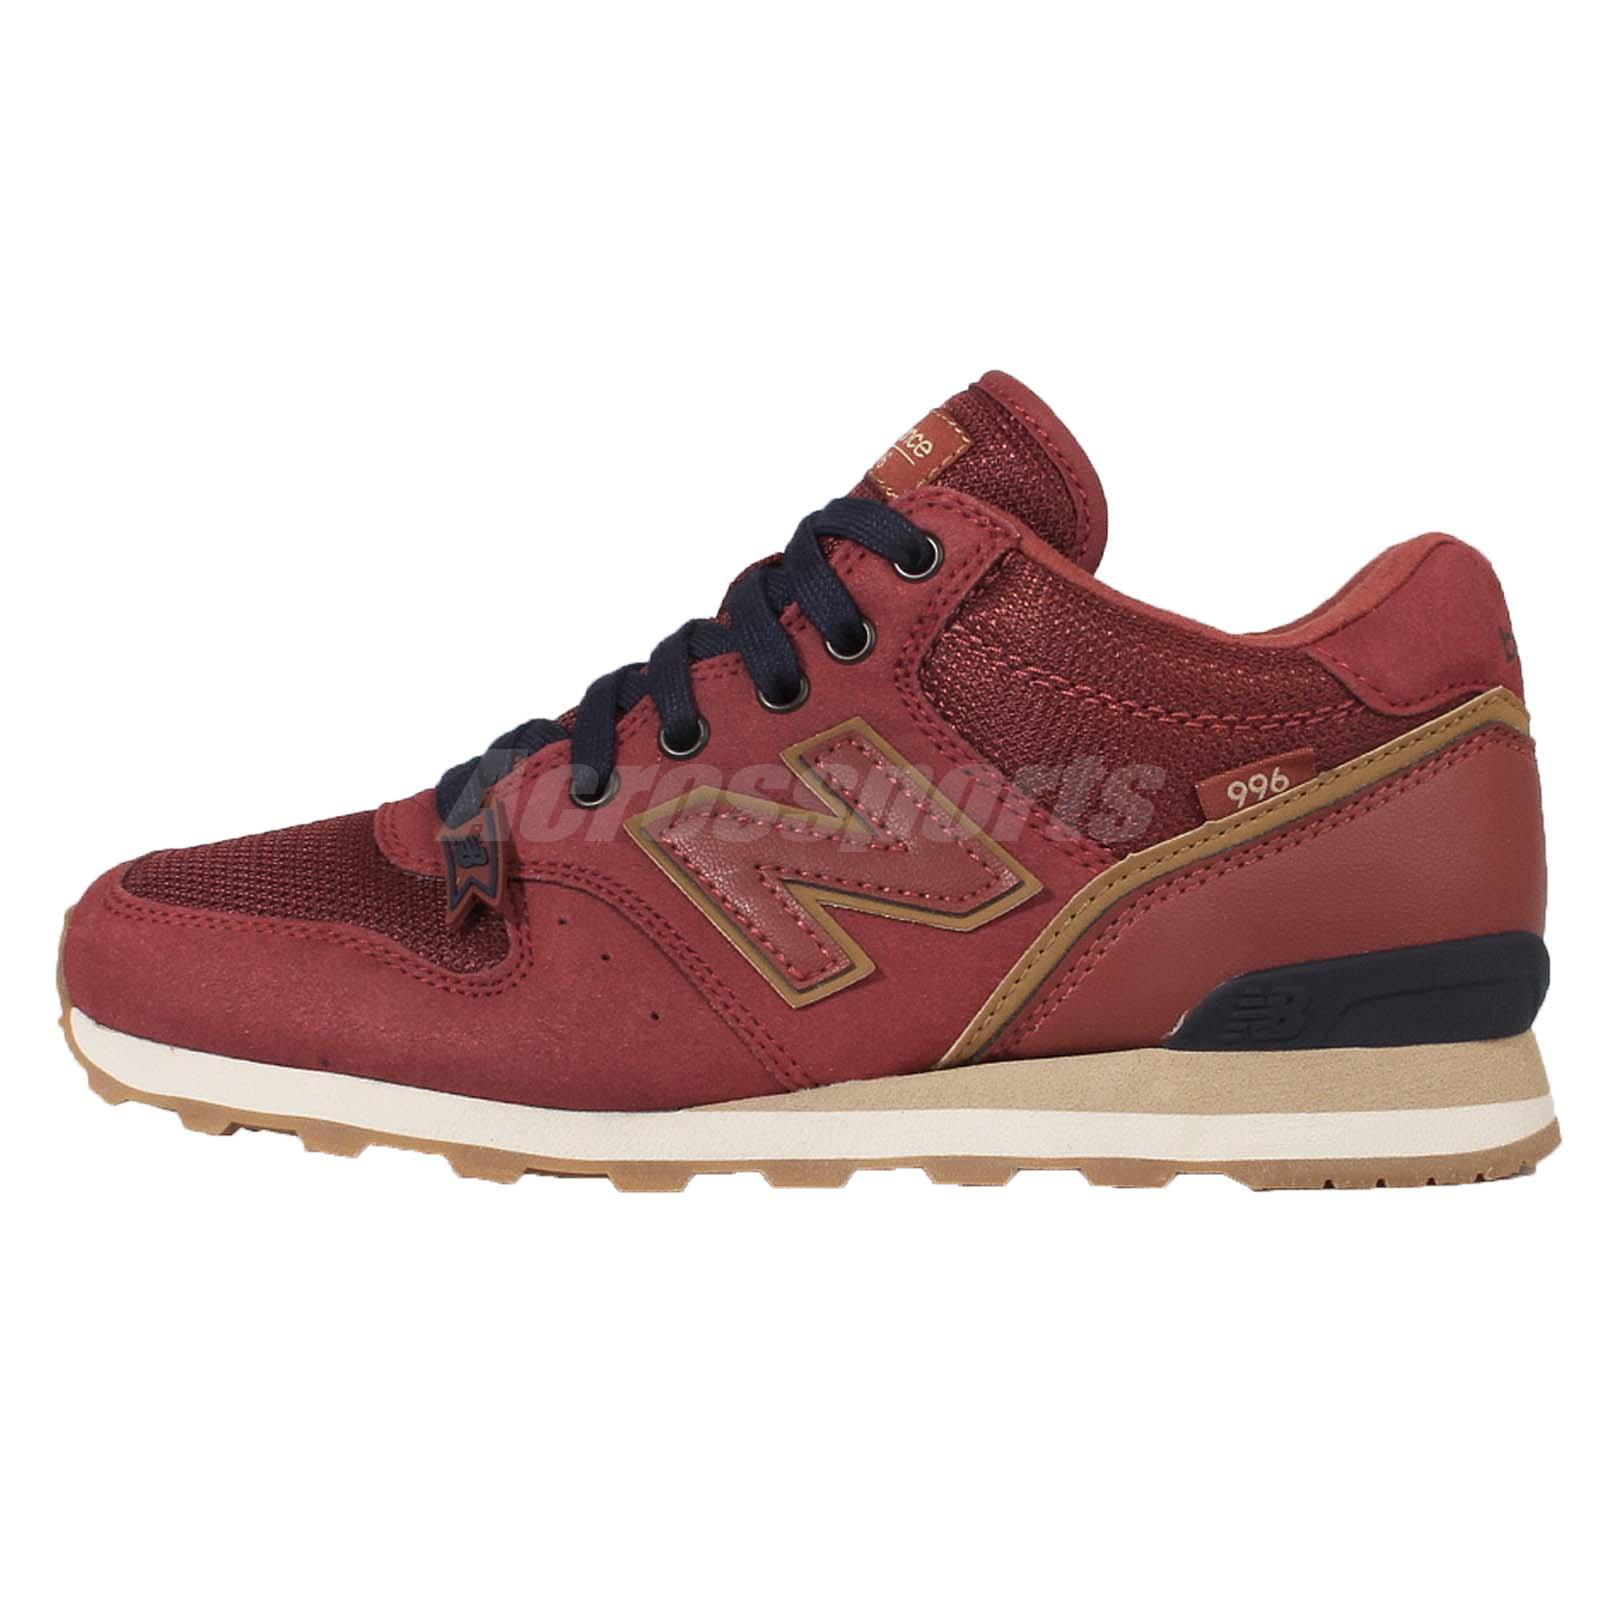 New Balance WH996CA D Wide Red Gold Suede Womens Retro Running Shoes WH996CAD